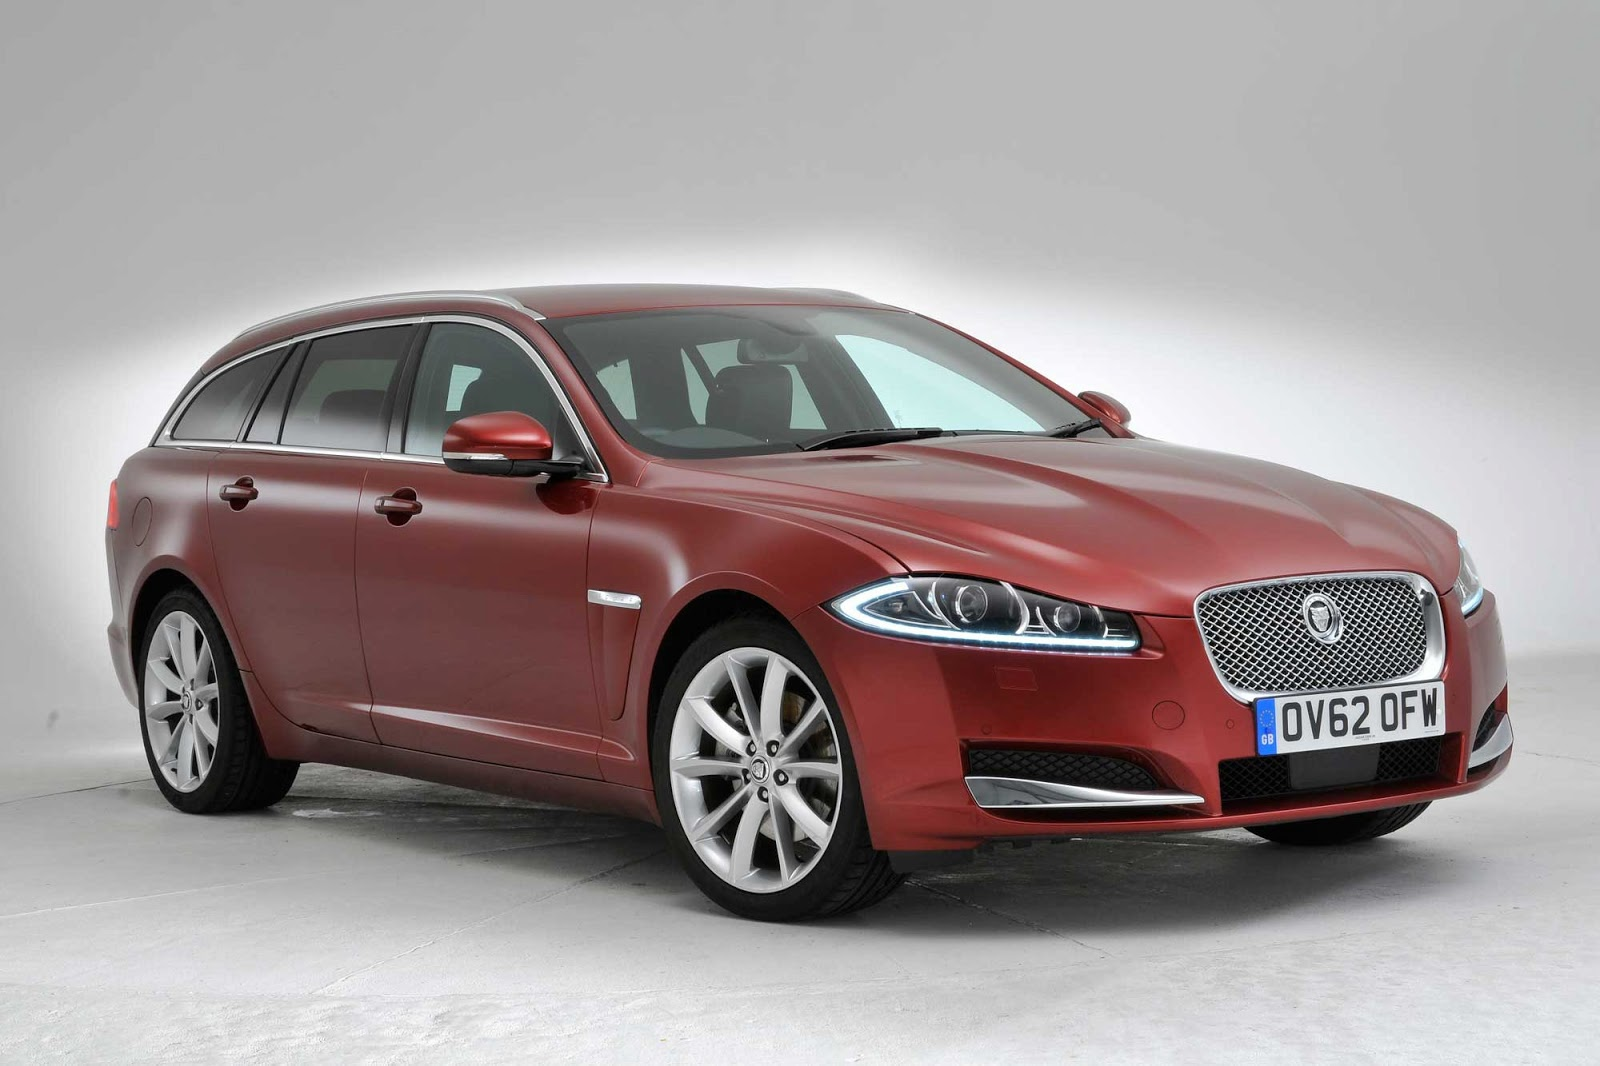 2013 jaguar xf sportbrake specs and price latest otomild. Black Bedroom Furniture Sets. Home Design Ideas